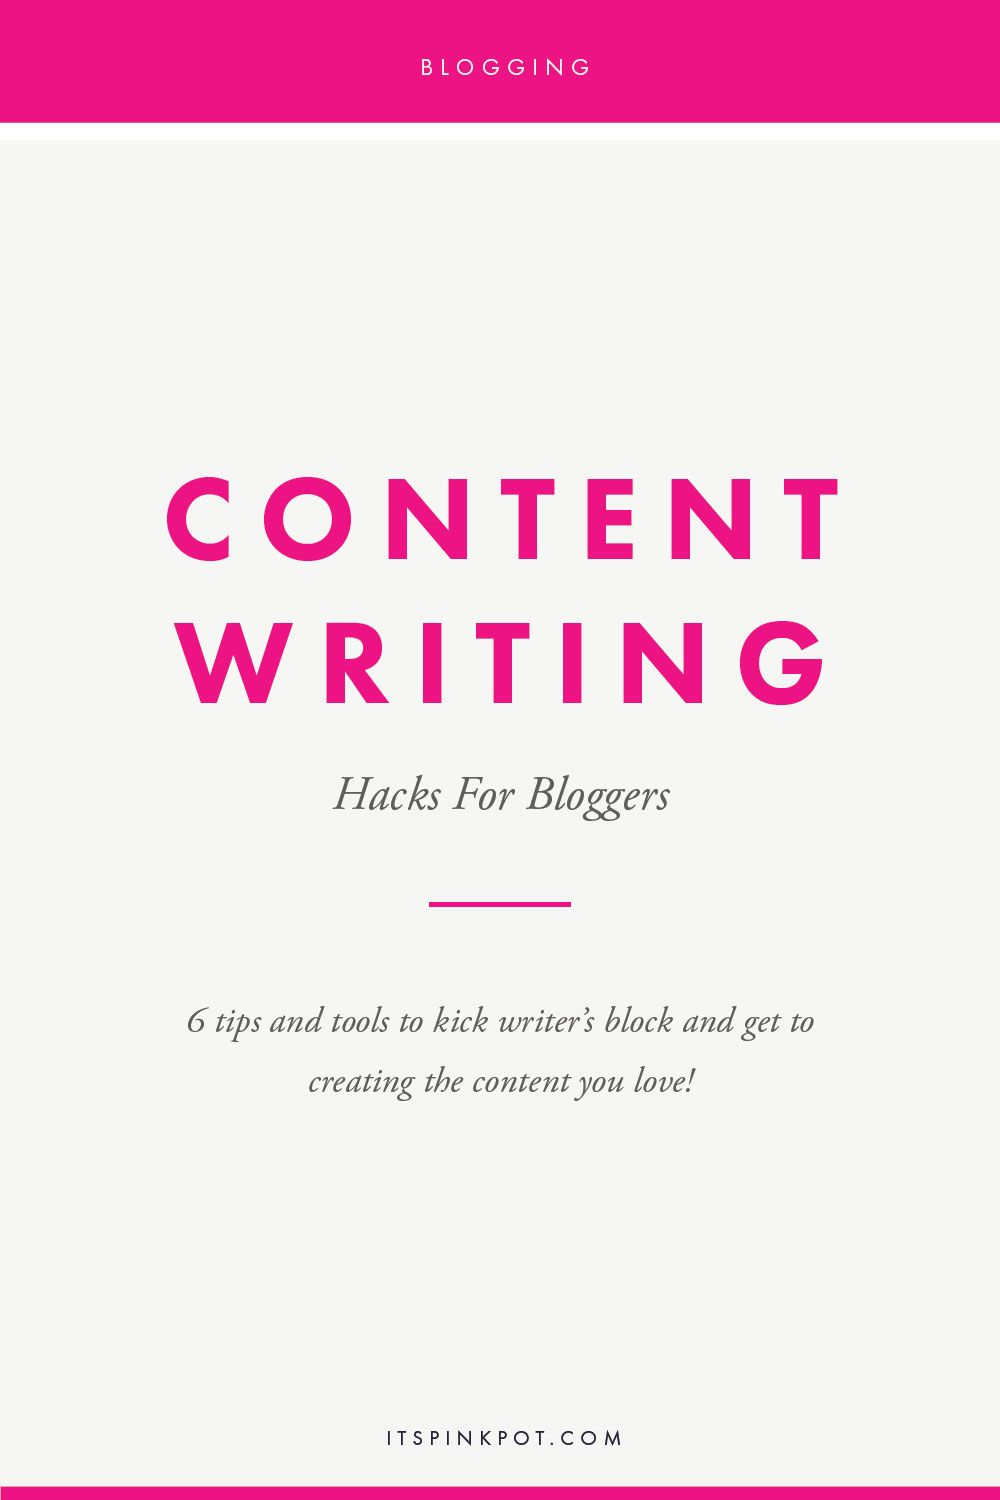 Content for blogs